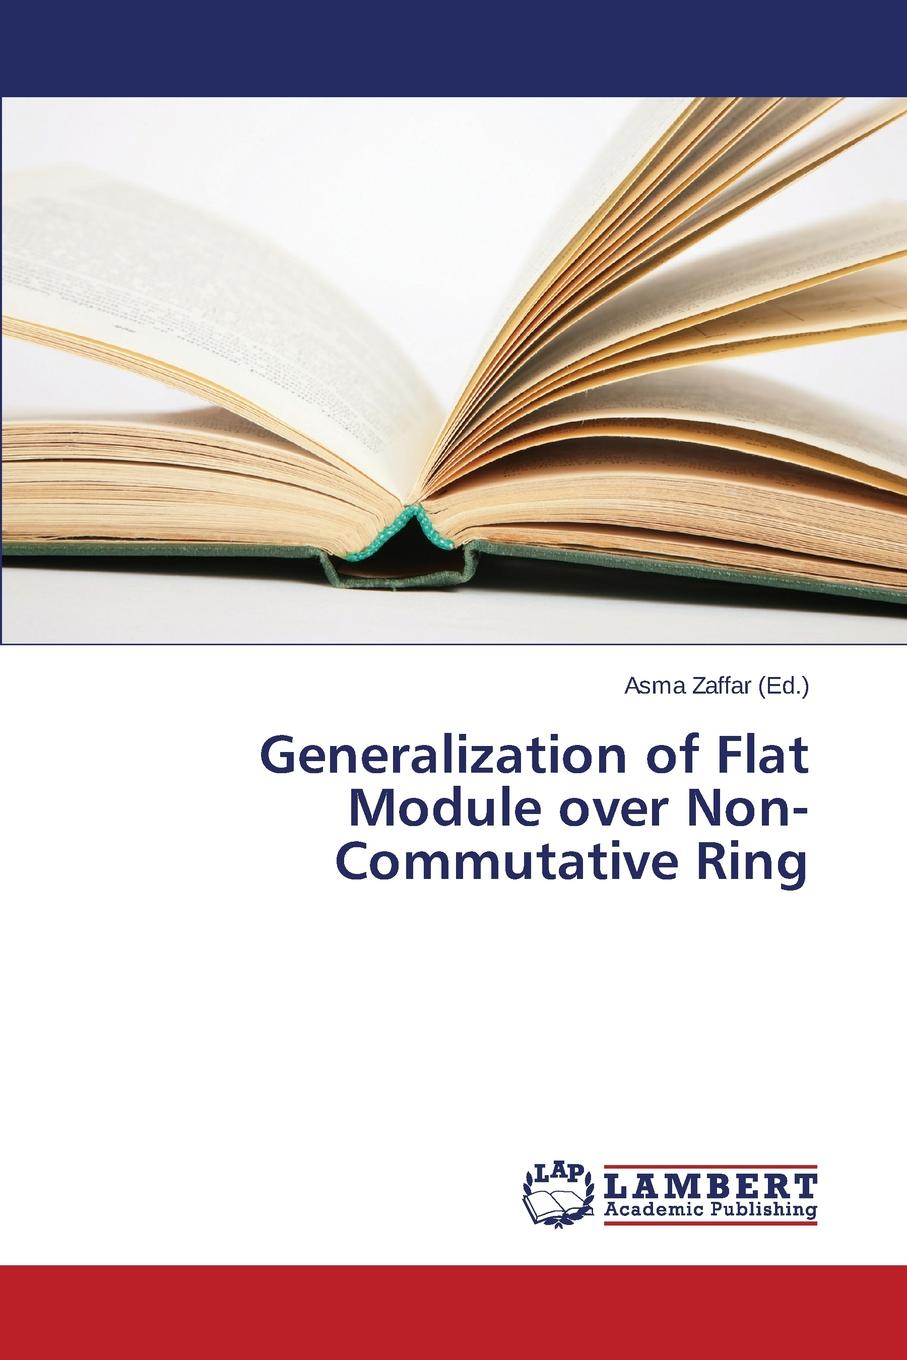 Generalization of Flat Module Over Non-Commutative Ring aos flat file storage folders stores flat items up to 12 x18 pack of 10